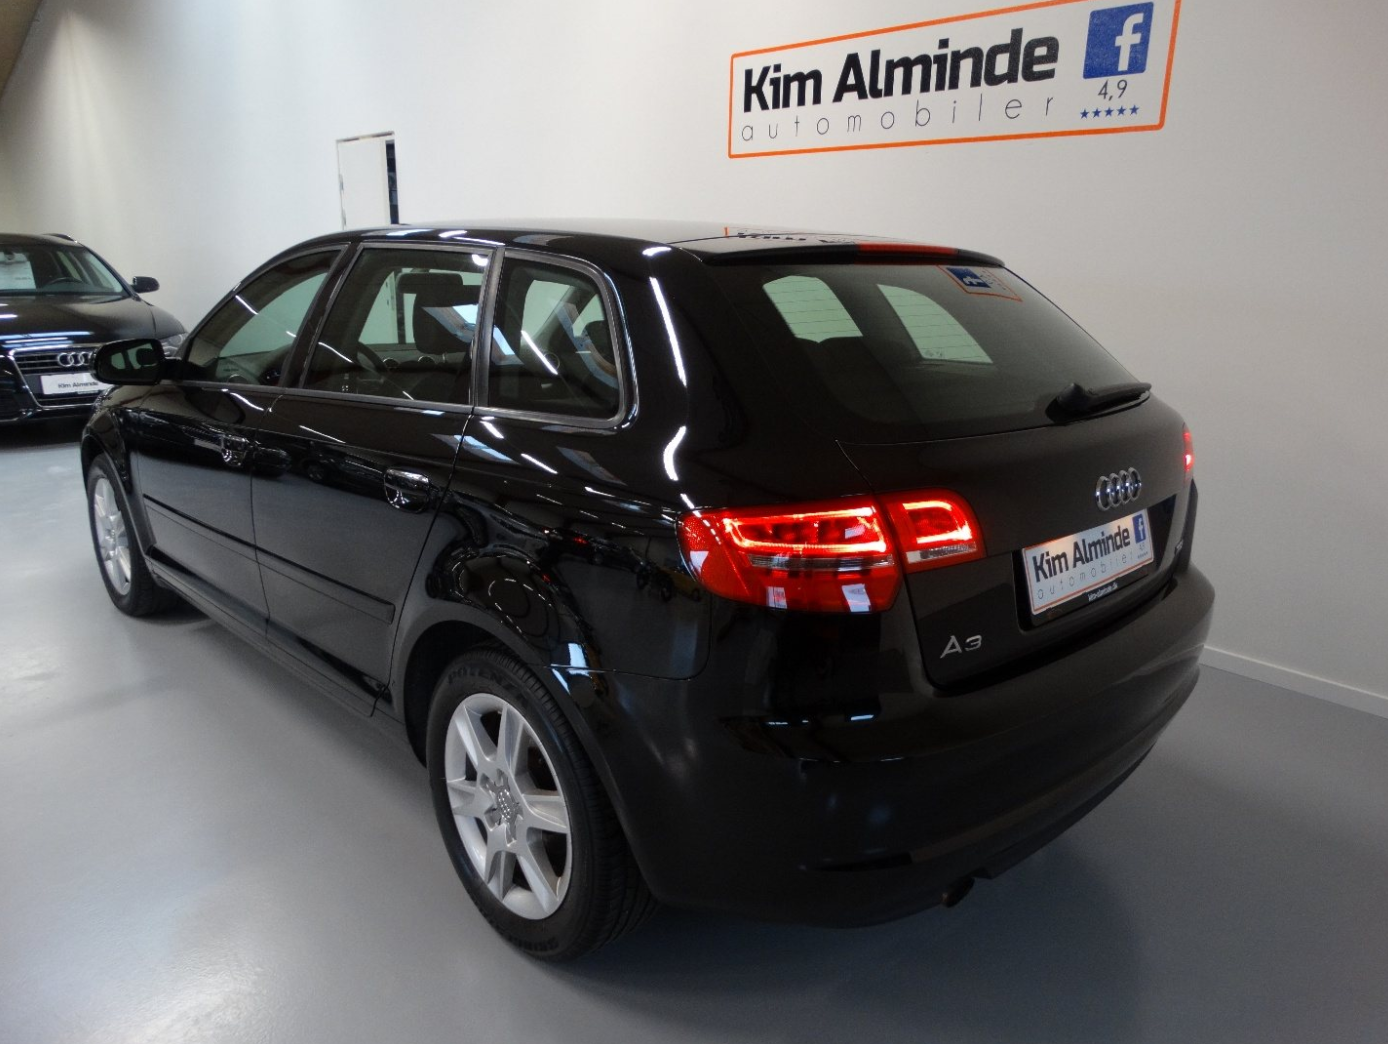 audi a3 2 0 tdi attraction sb 2013 flexleasing leasingoffer. Black Bedroom Furniture Sets. Home Design Ideas